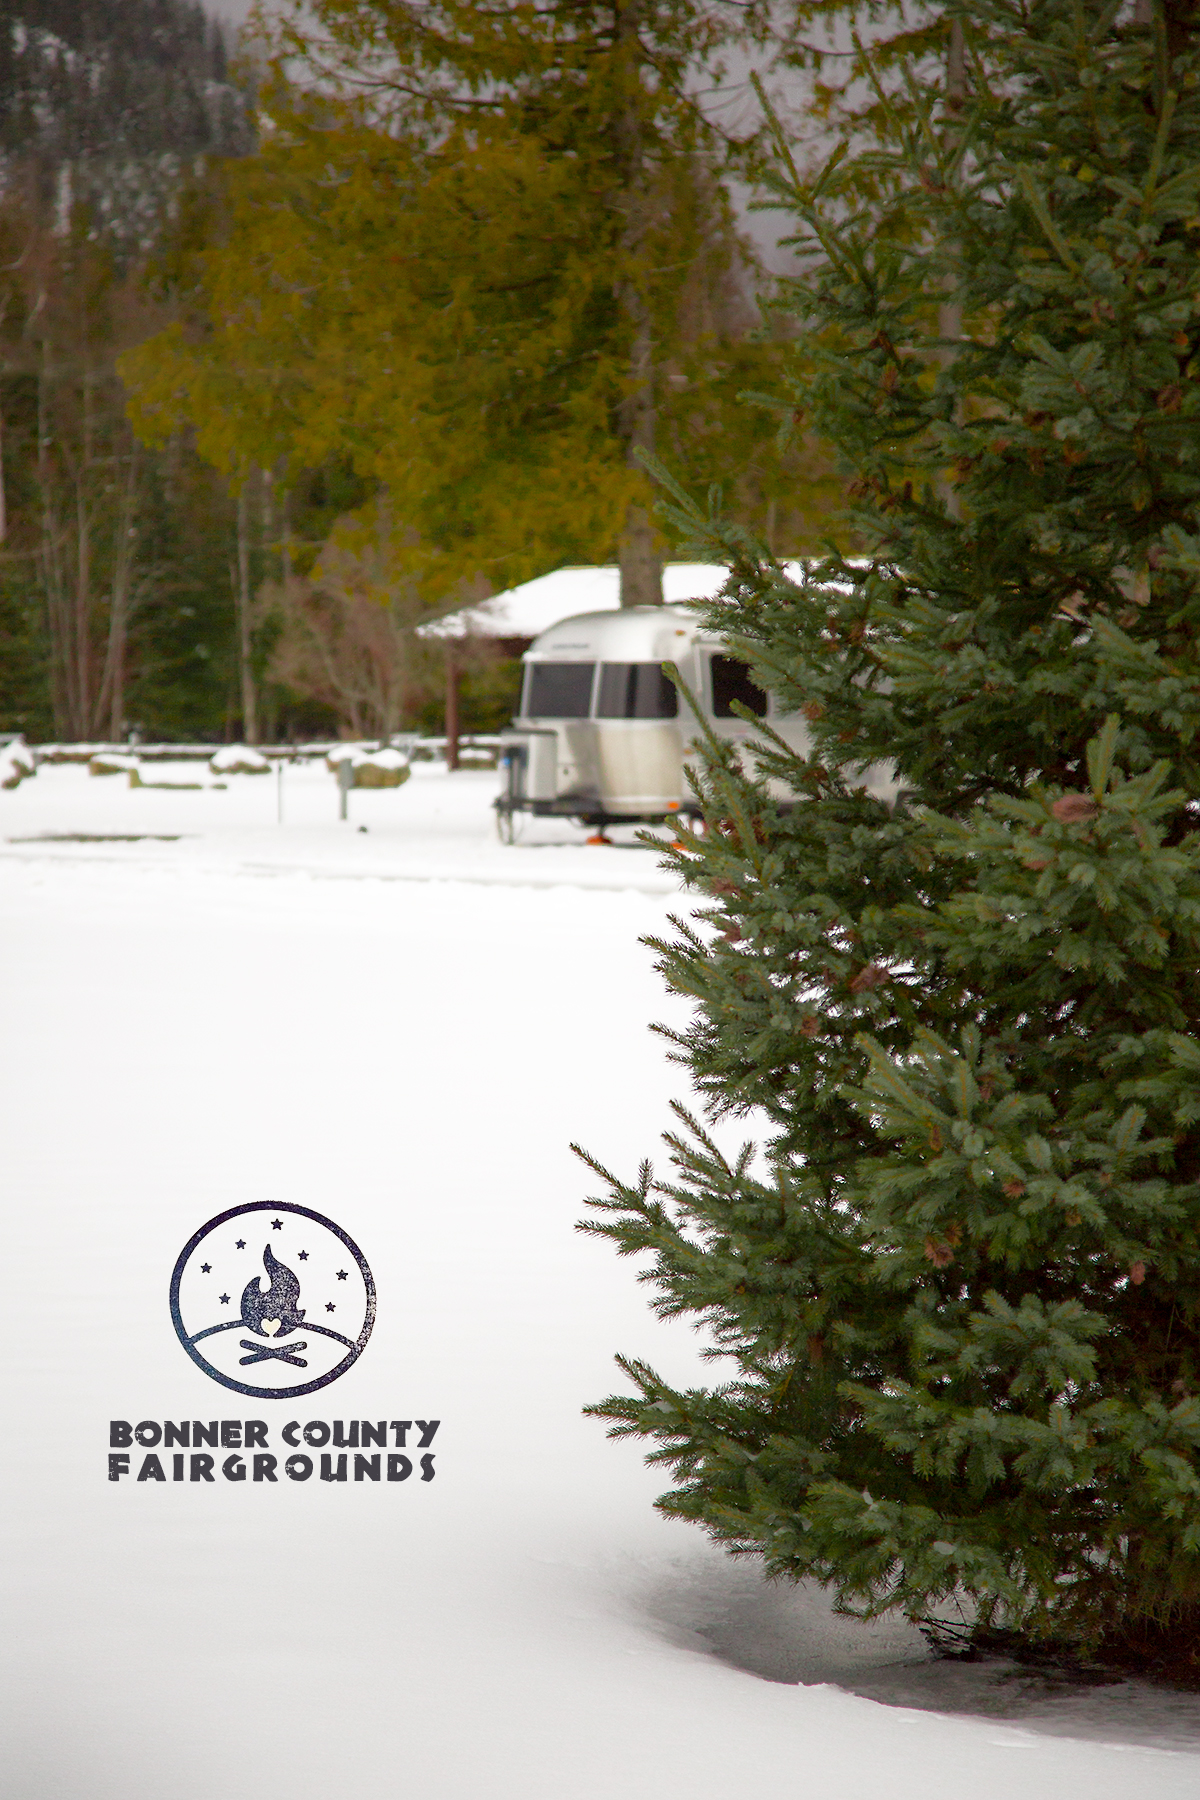 Bonner County Fairgrounds in Sandpoint, ID with our Airstream 2014